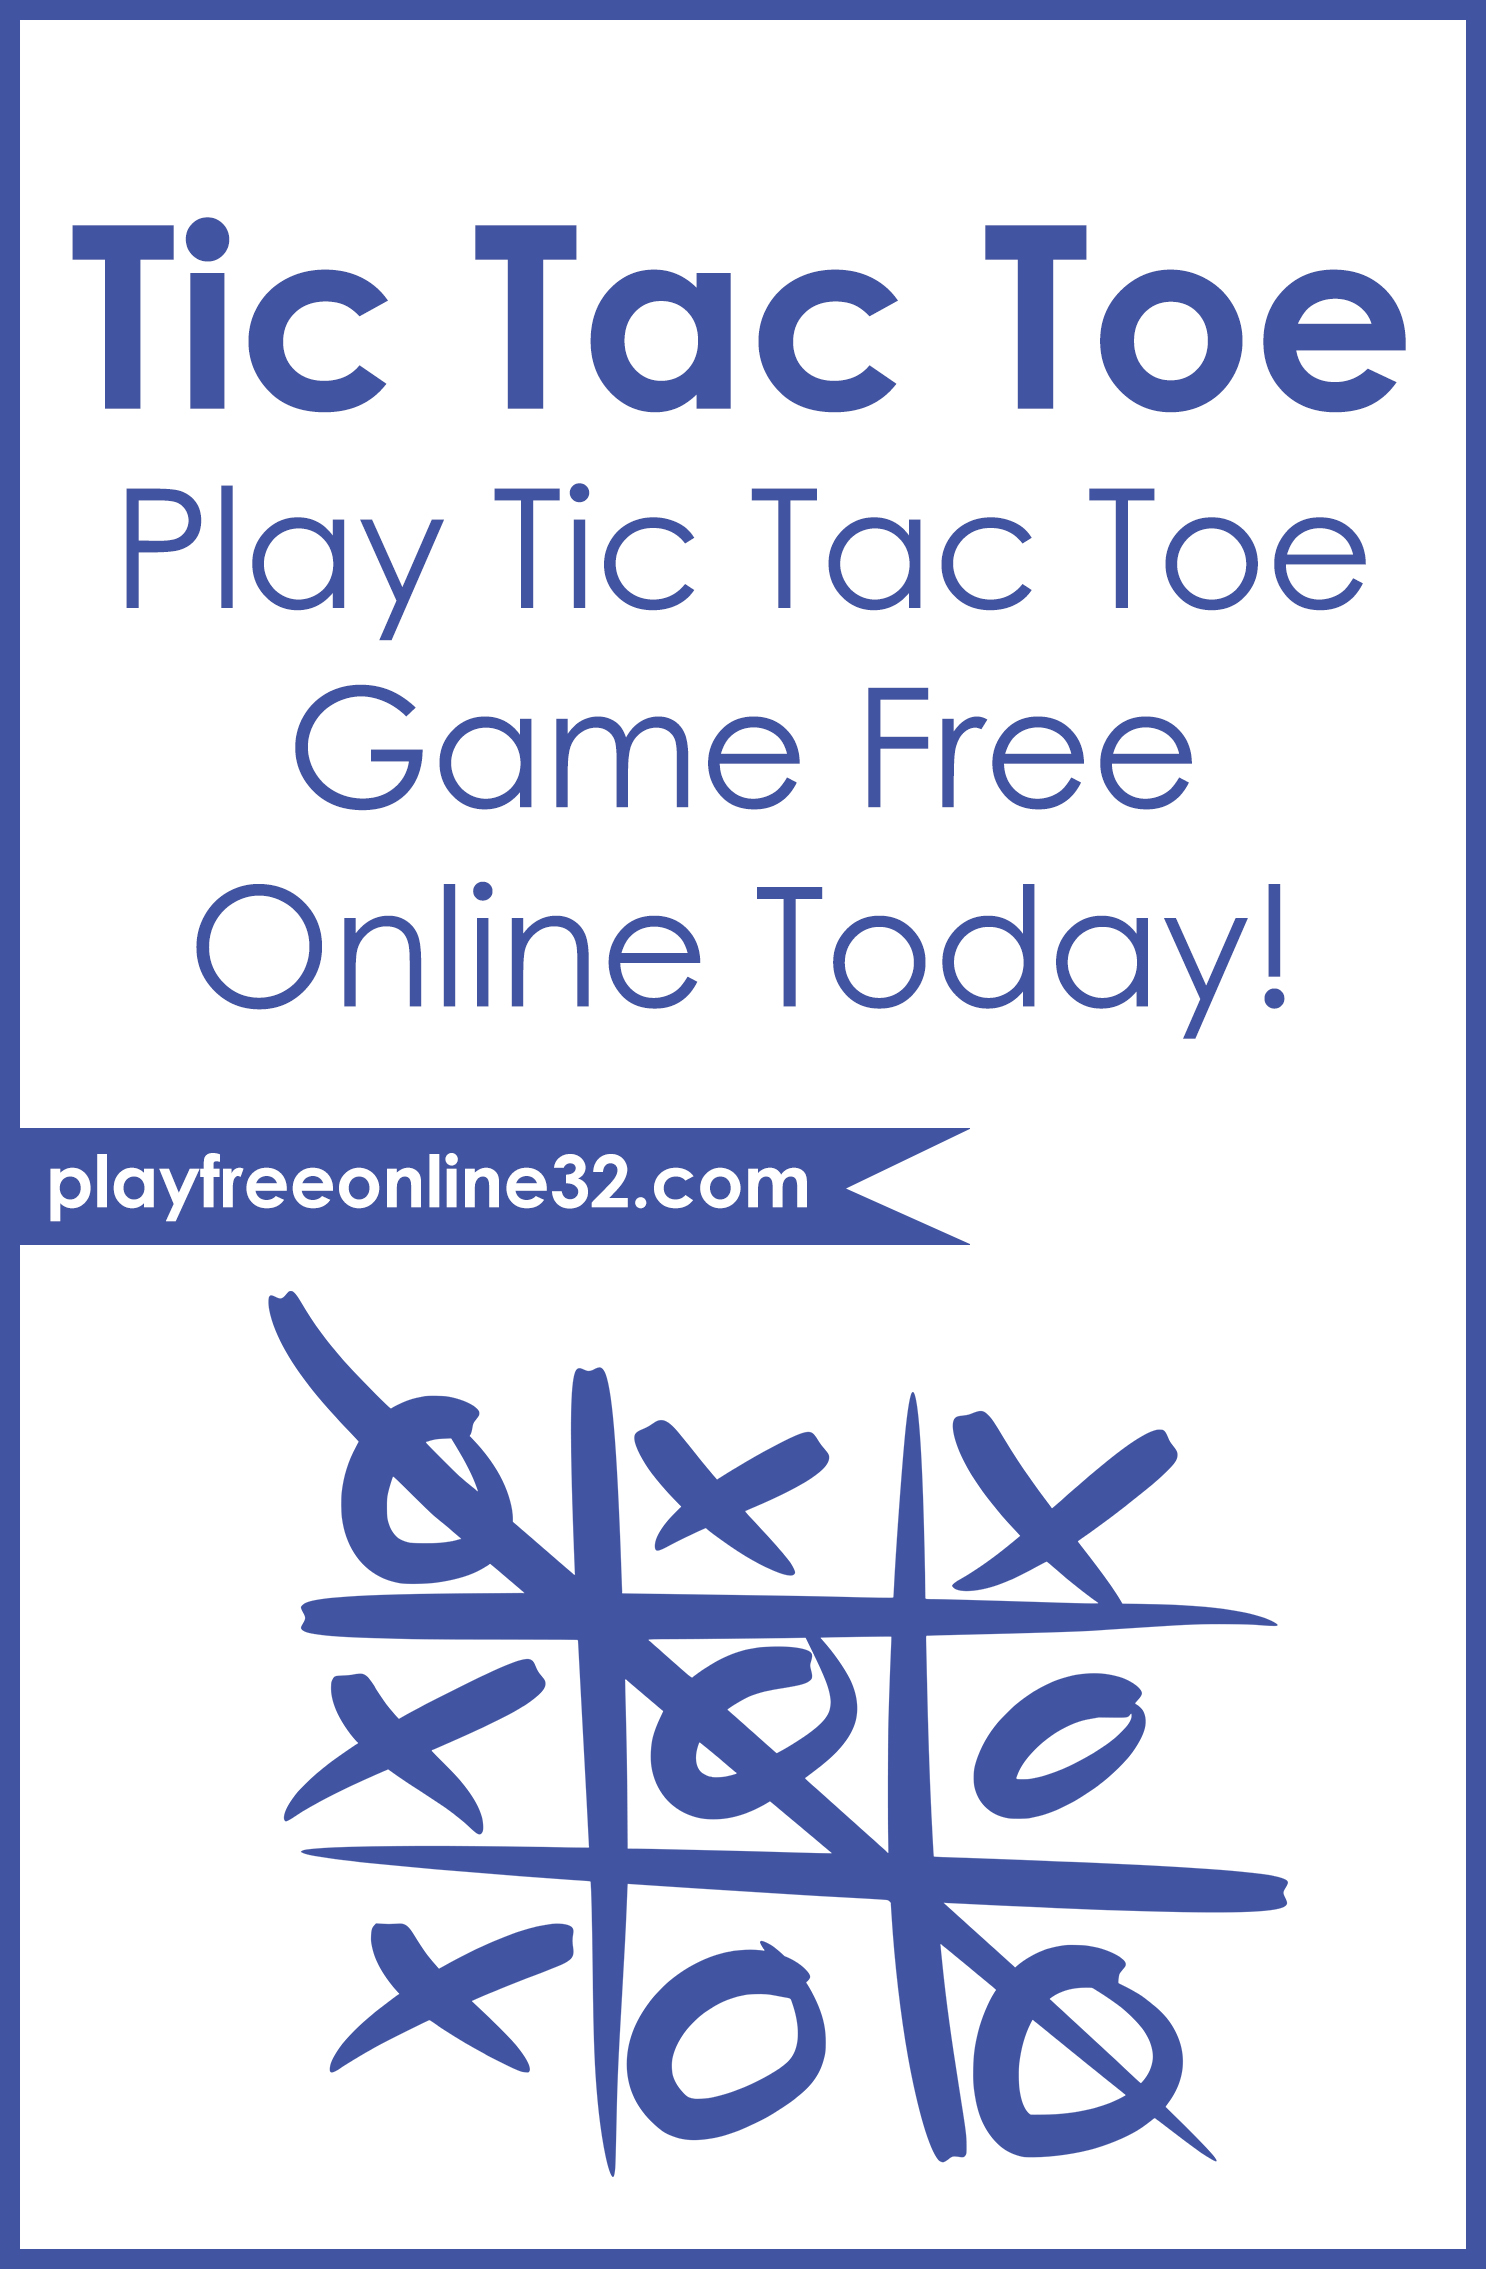 Tic Tac Toe Online • Play Tic Tac Toe Game Free Online Today!